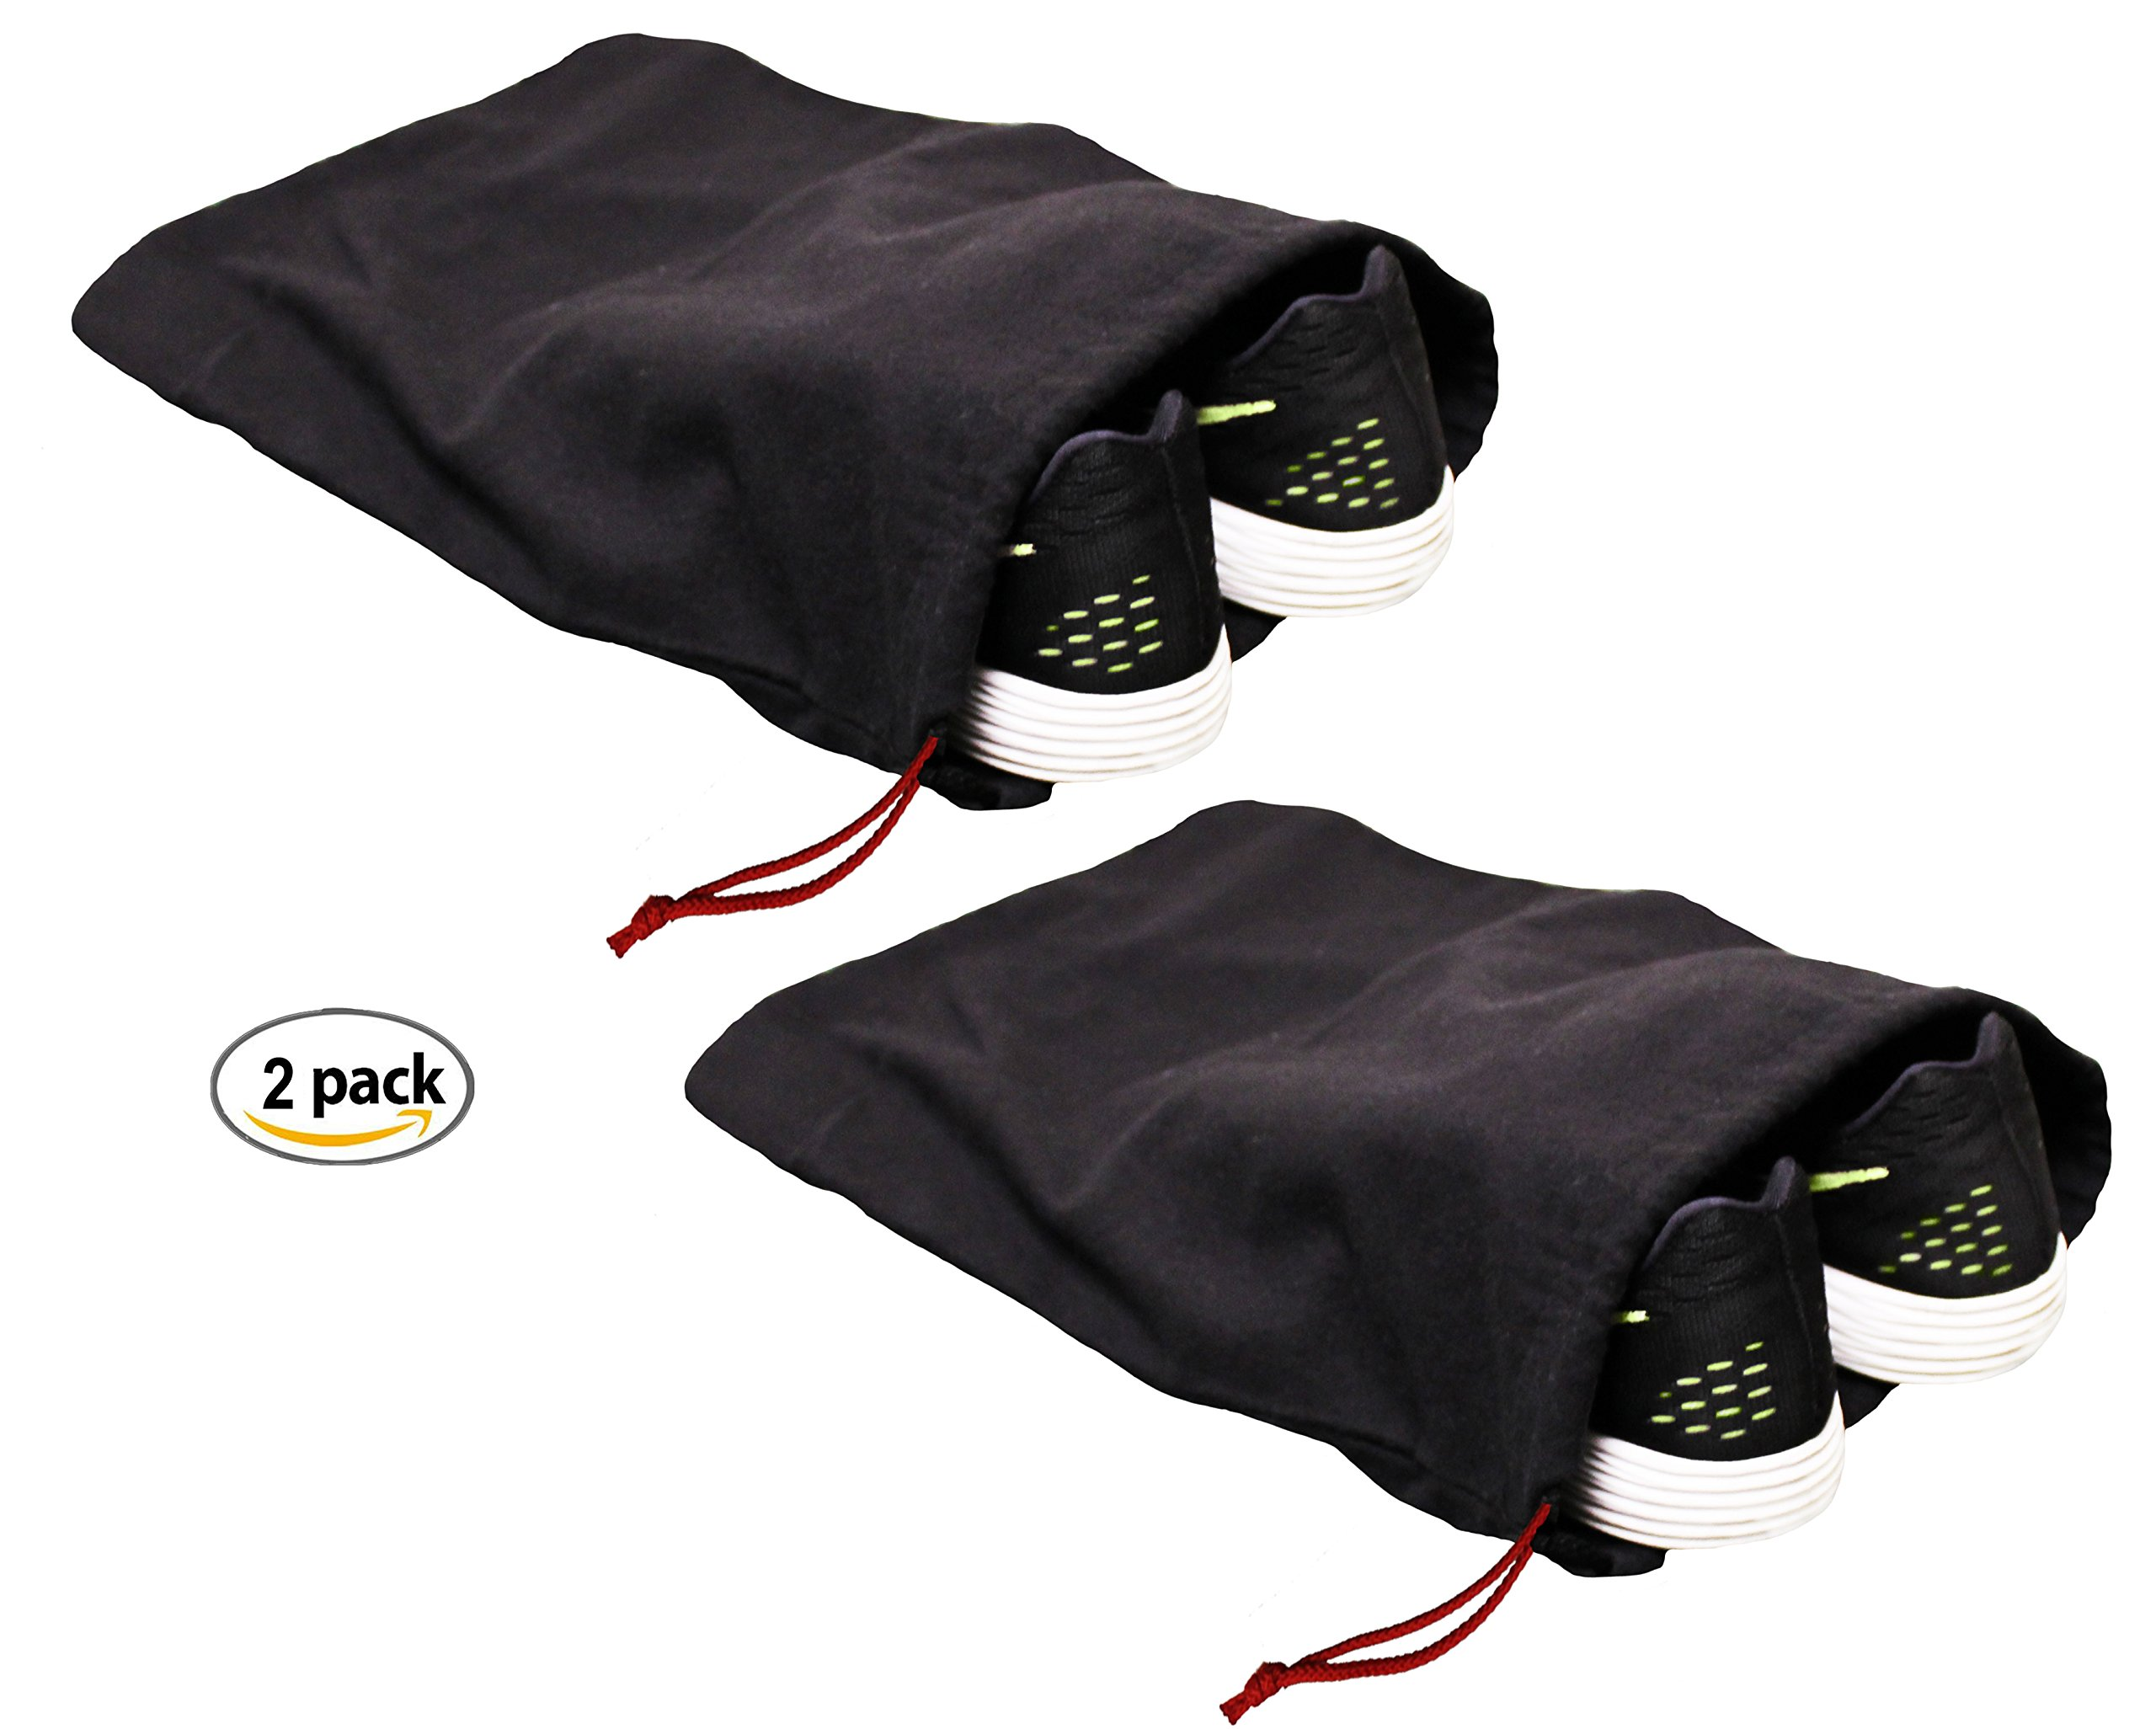 Earthwise 100% Cotton Shoe Storage Bags For Men/Women with Drawstring in Black. MADE IN THE USA. Great for Travel. Each Black bag holds one pair of shoes. 17'' X 12'' MACHINE WASHABLE (2 Pack)